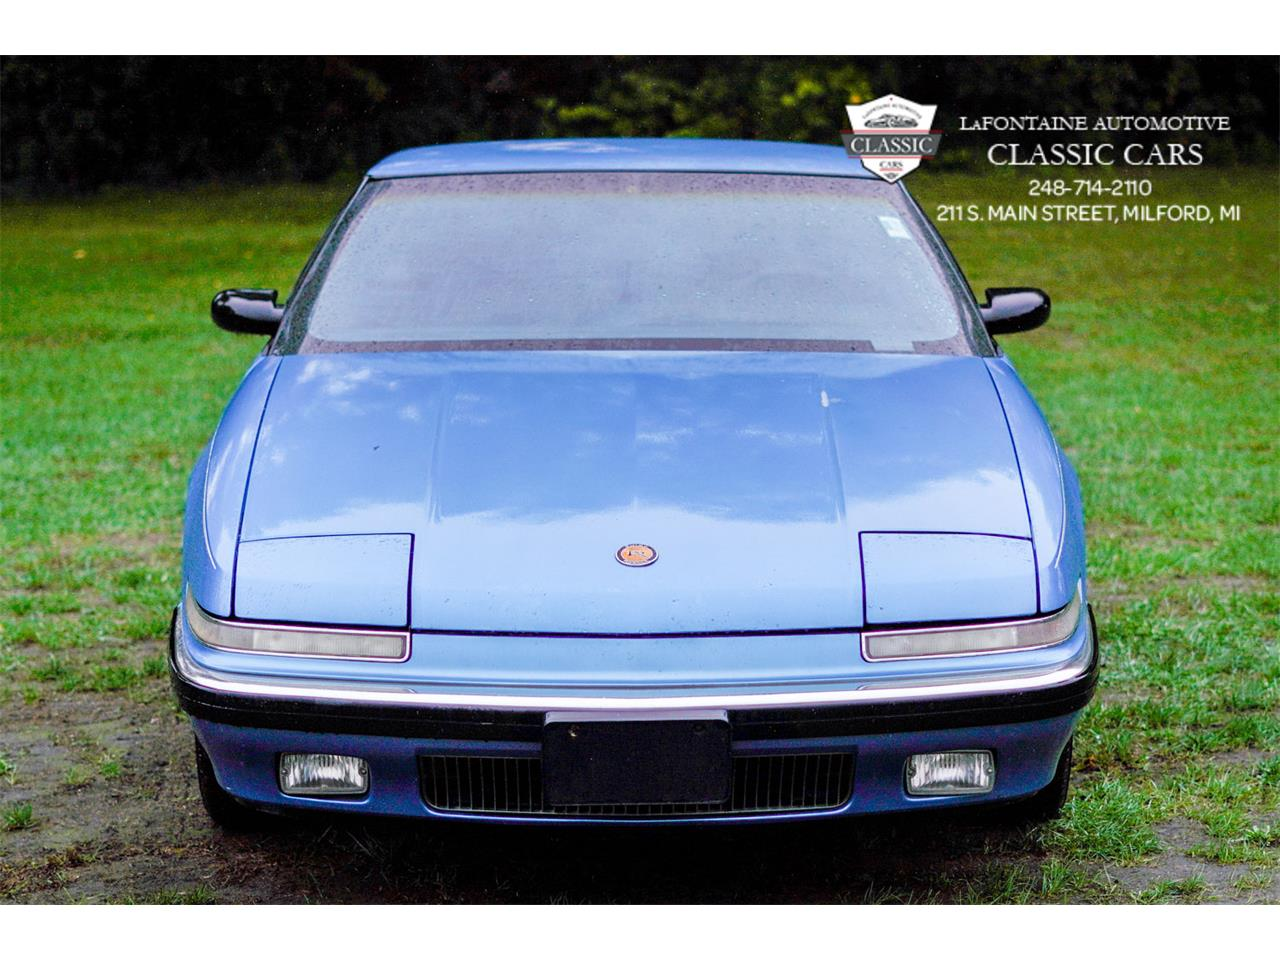 1990 Buick Reatta (CC-1409482) for sale in Milford, Michigan